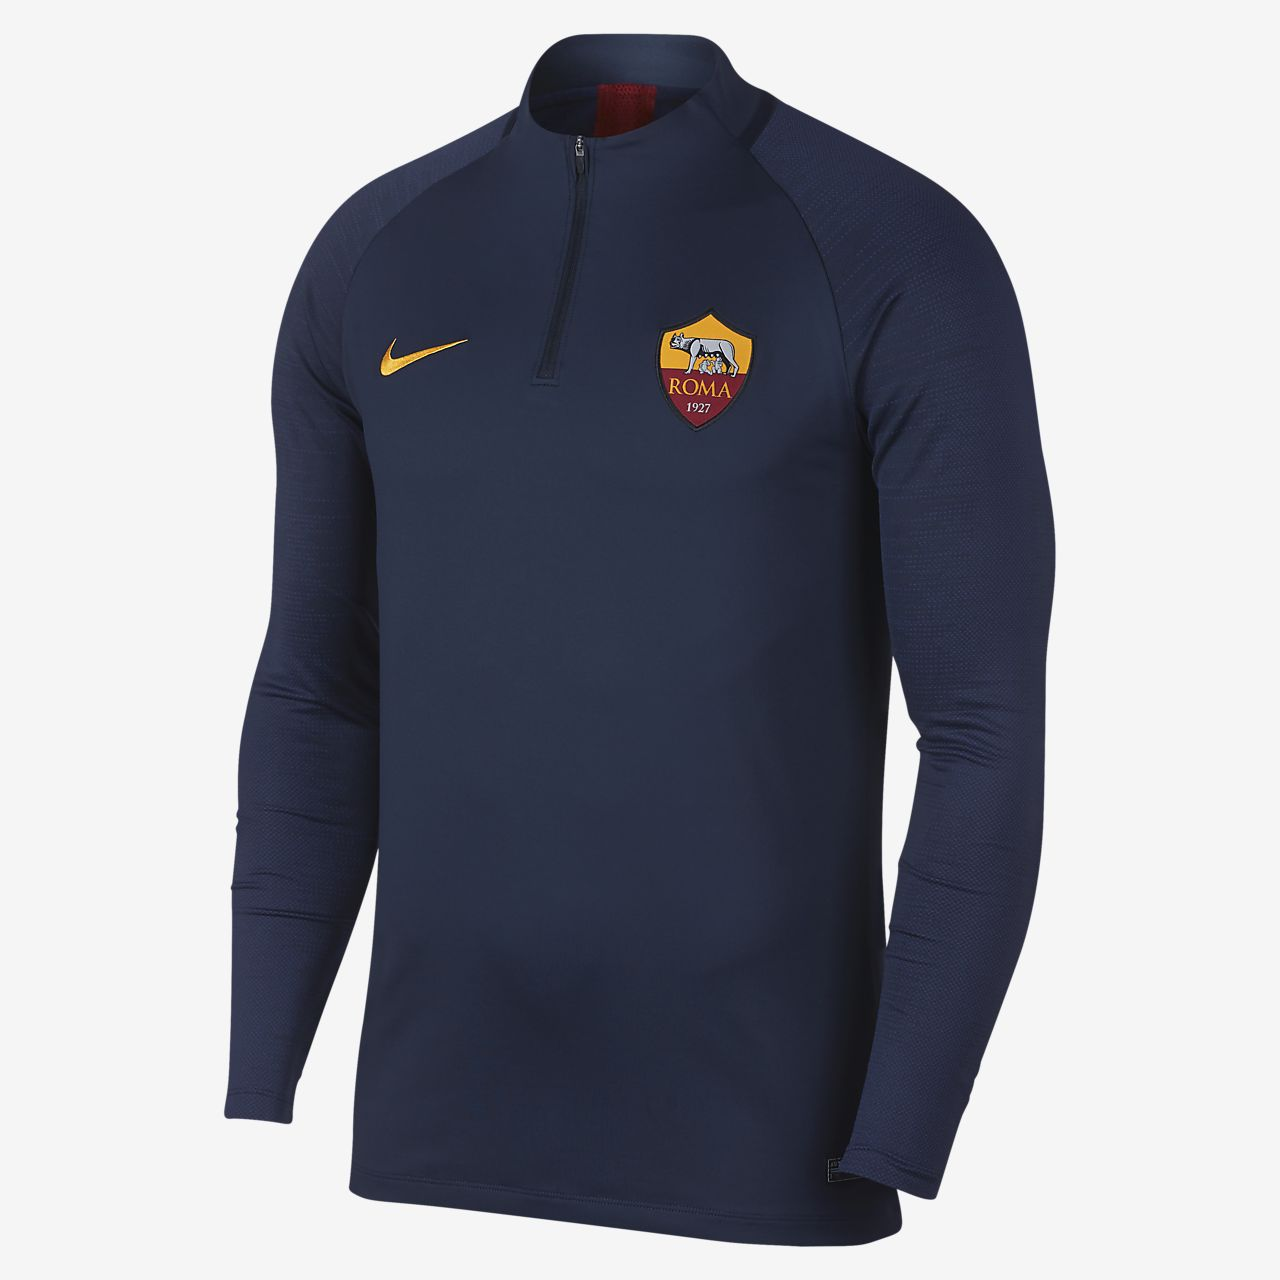 Nike Dri-FIT A.S. Roma Strike Men's Football Drill Top